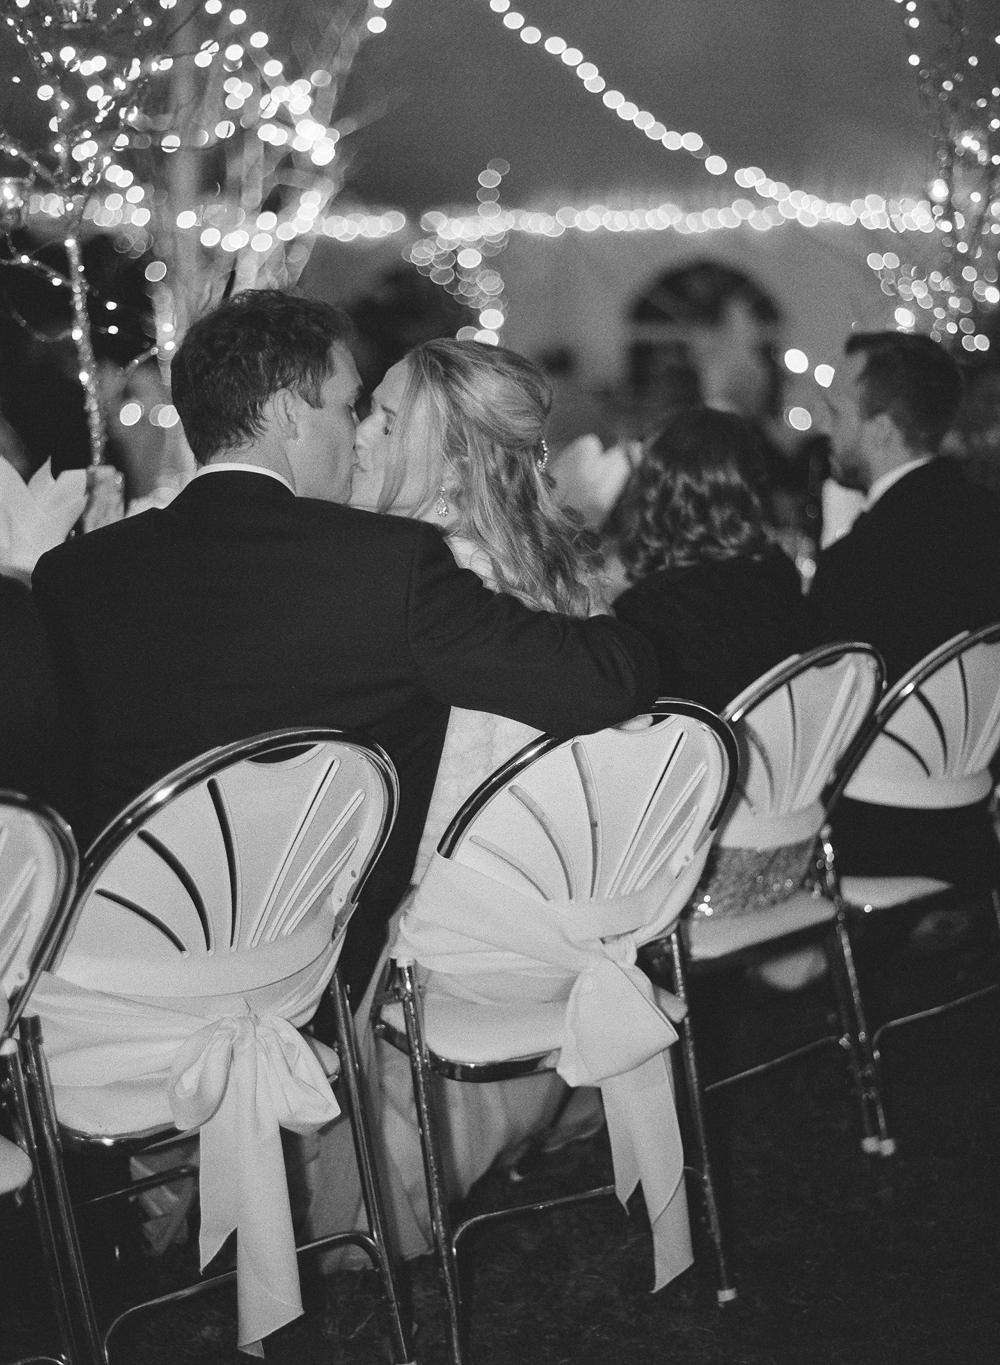 michigan-backyard-wedding-052